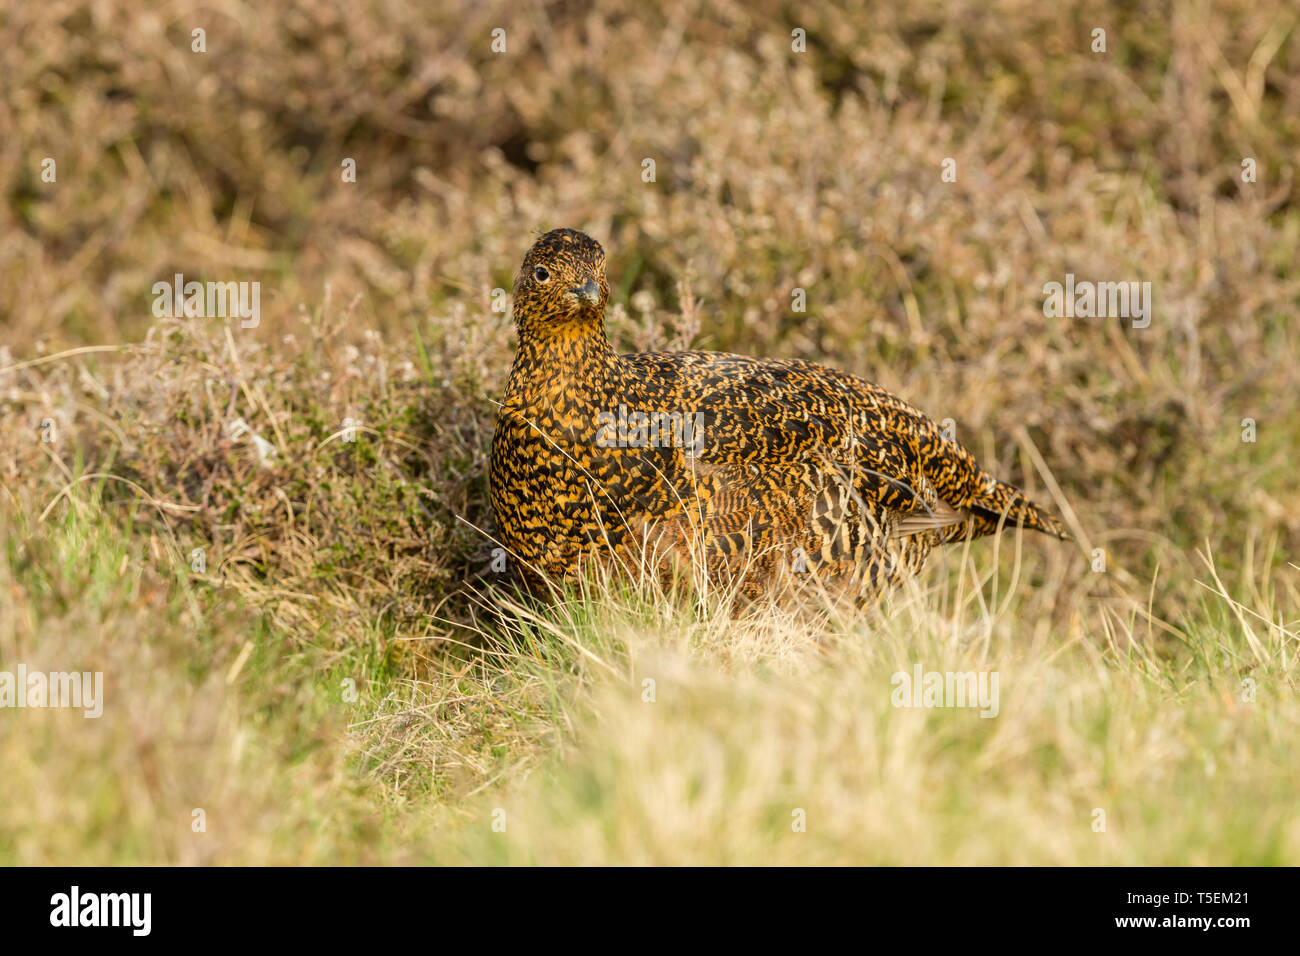 Red Grouse (Scientific name: Lagopus lagopus) Hen or female bird stood in natural moorland habitat in Springtime. Blurred background. Landscape - Stock Image